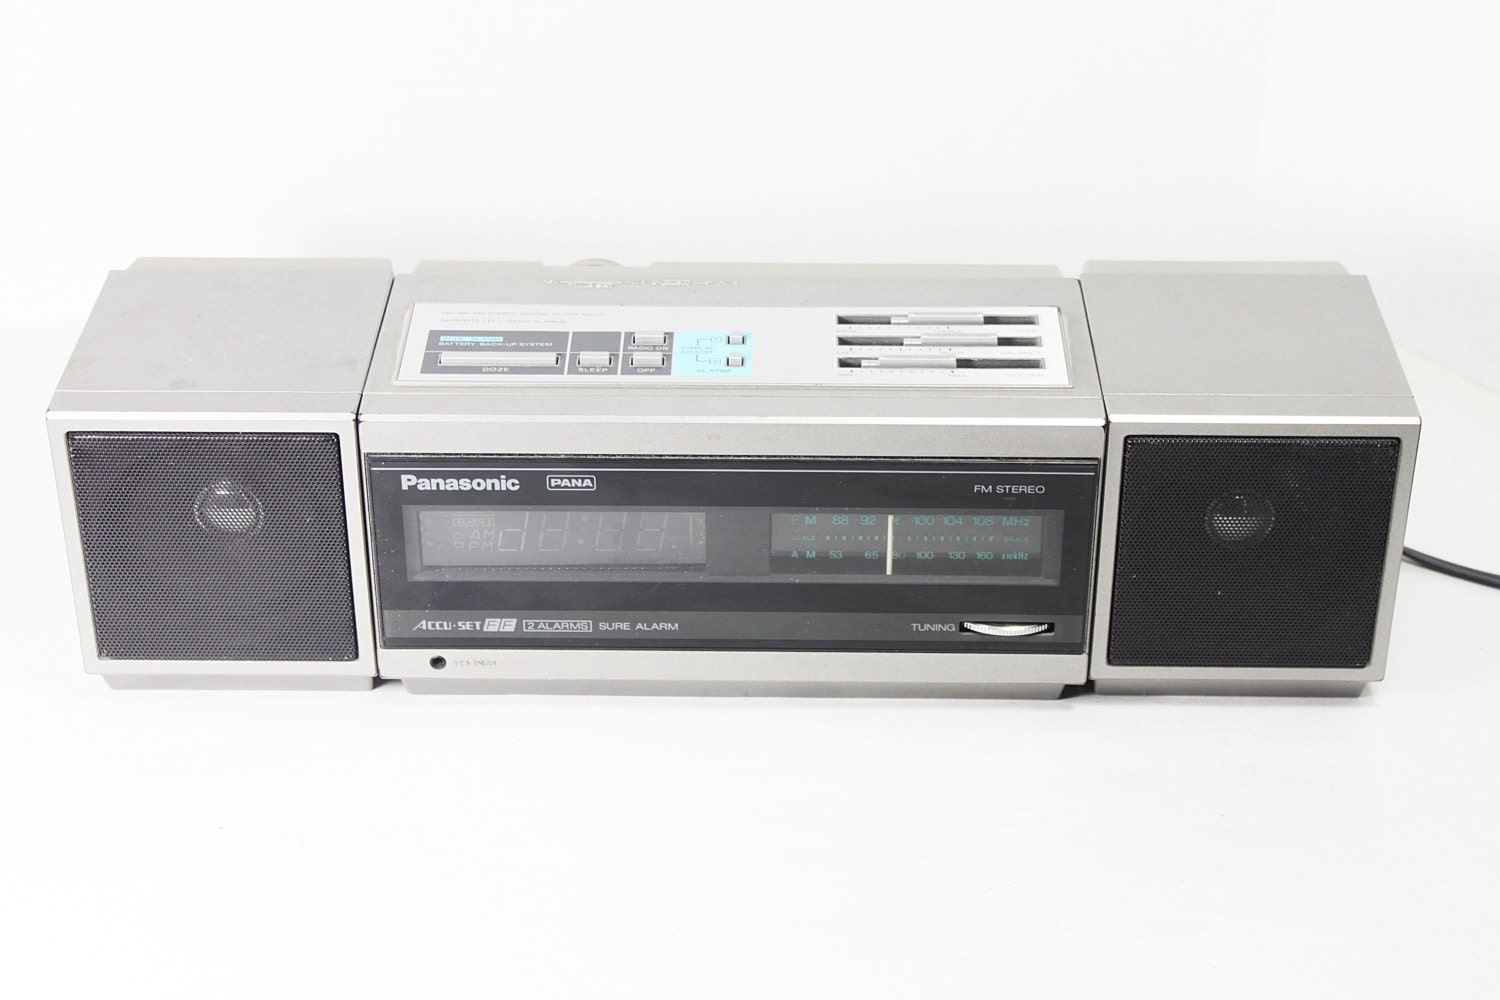 Vintage Panasonic Stereo Digital Clock Radio Rc X310